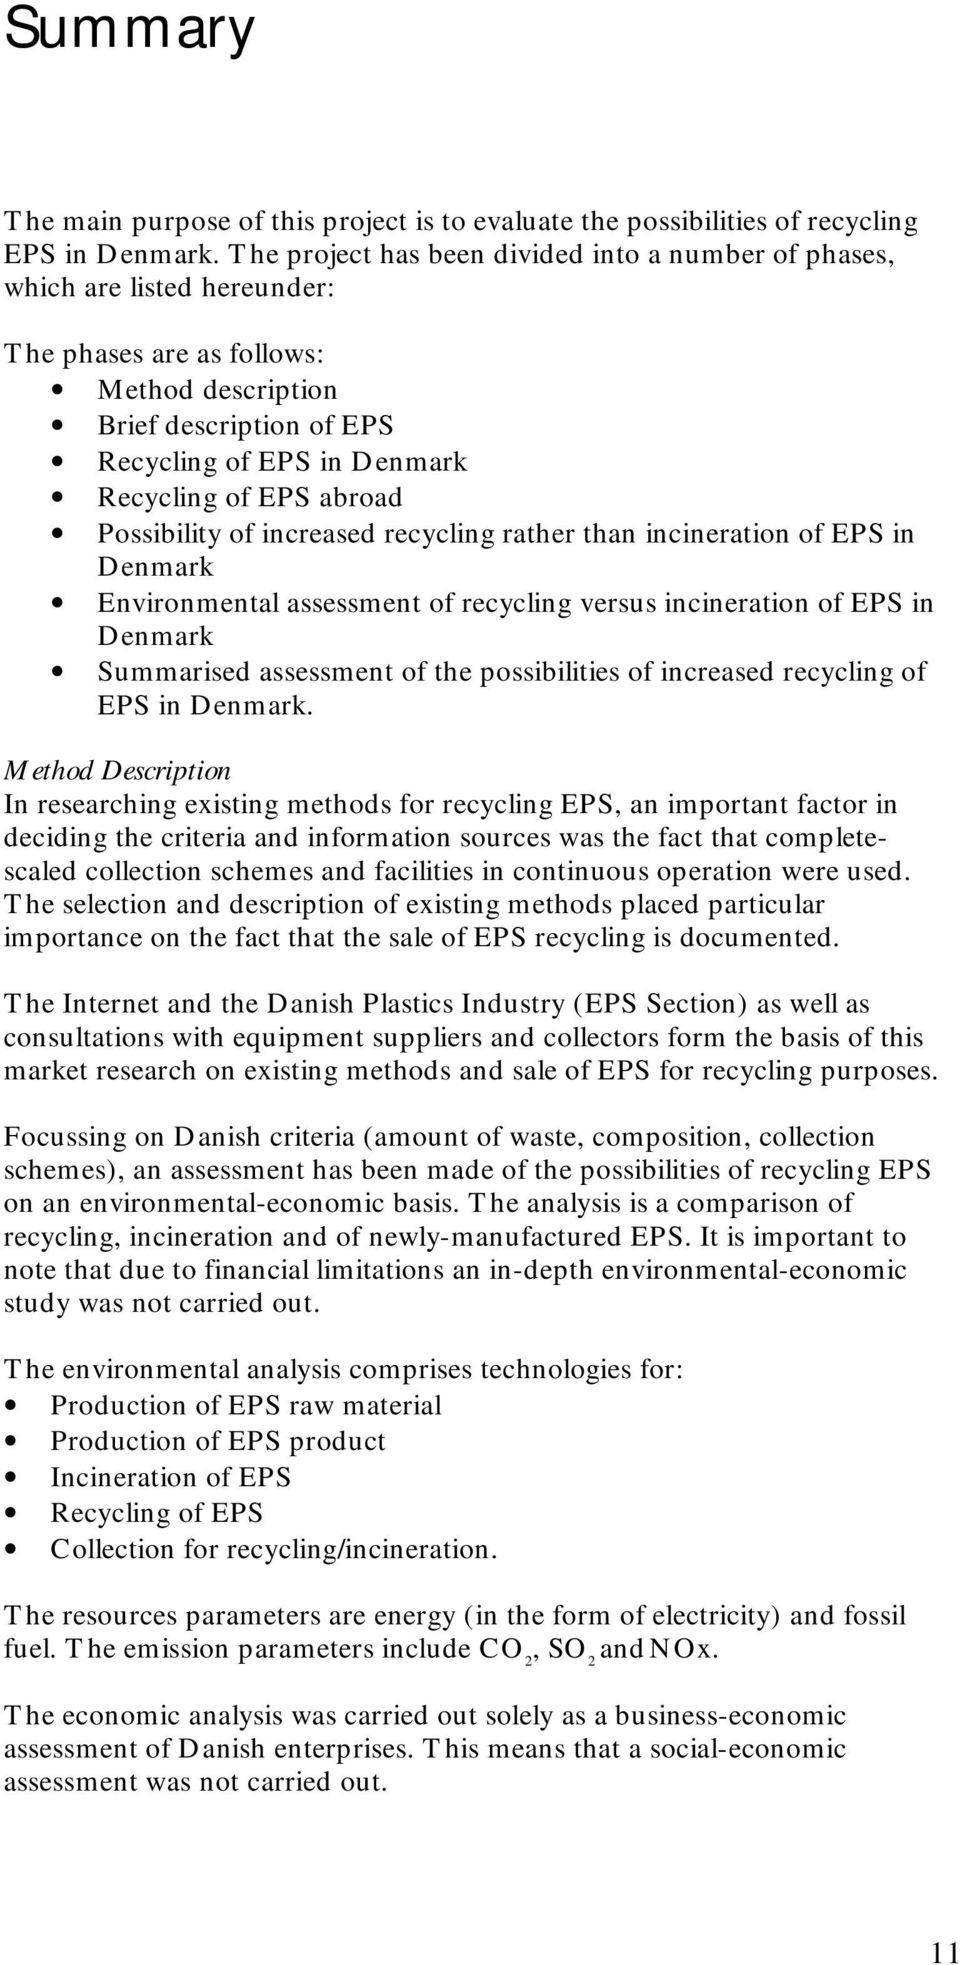 abroad Possibility of increased recycling rather than incineration of EPS in Denmark Environmental assessment of recycling versus incineration of EPS in Denmark Summarised assessment of the